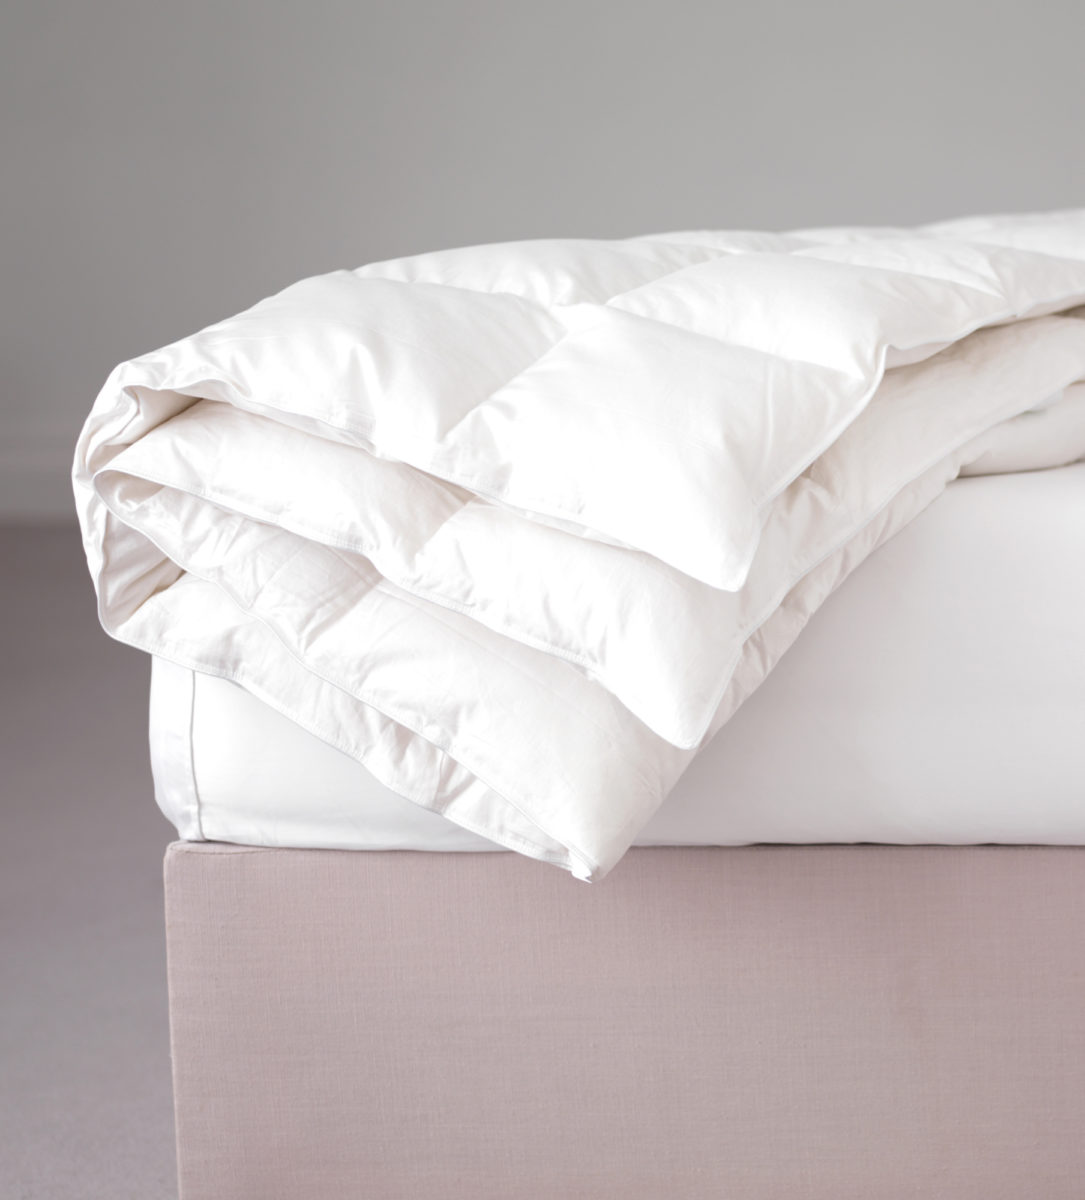 zoom soft duvet to more hi down duvets click home store double as res